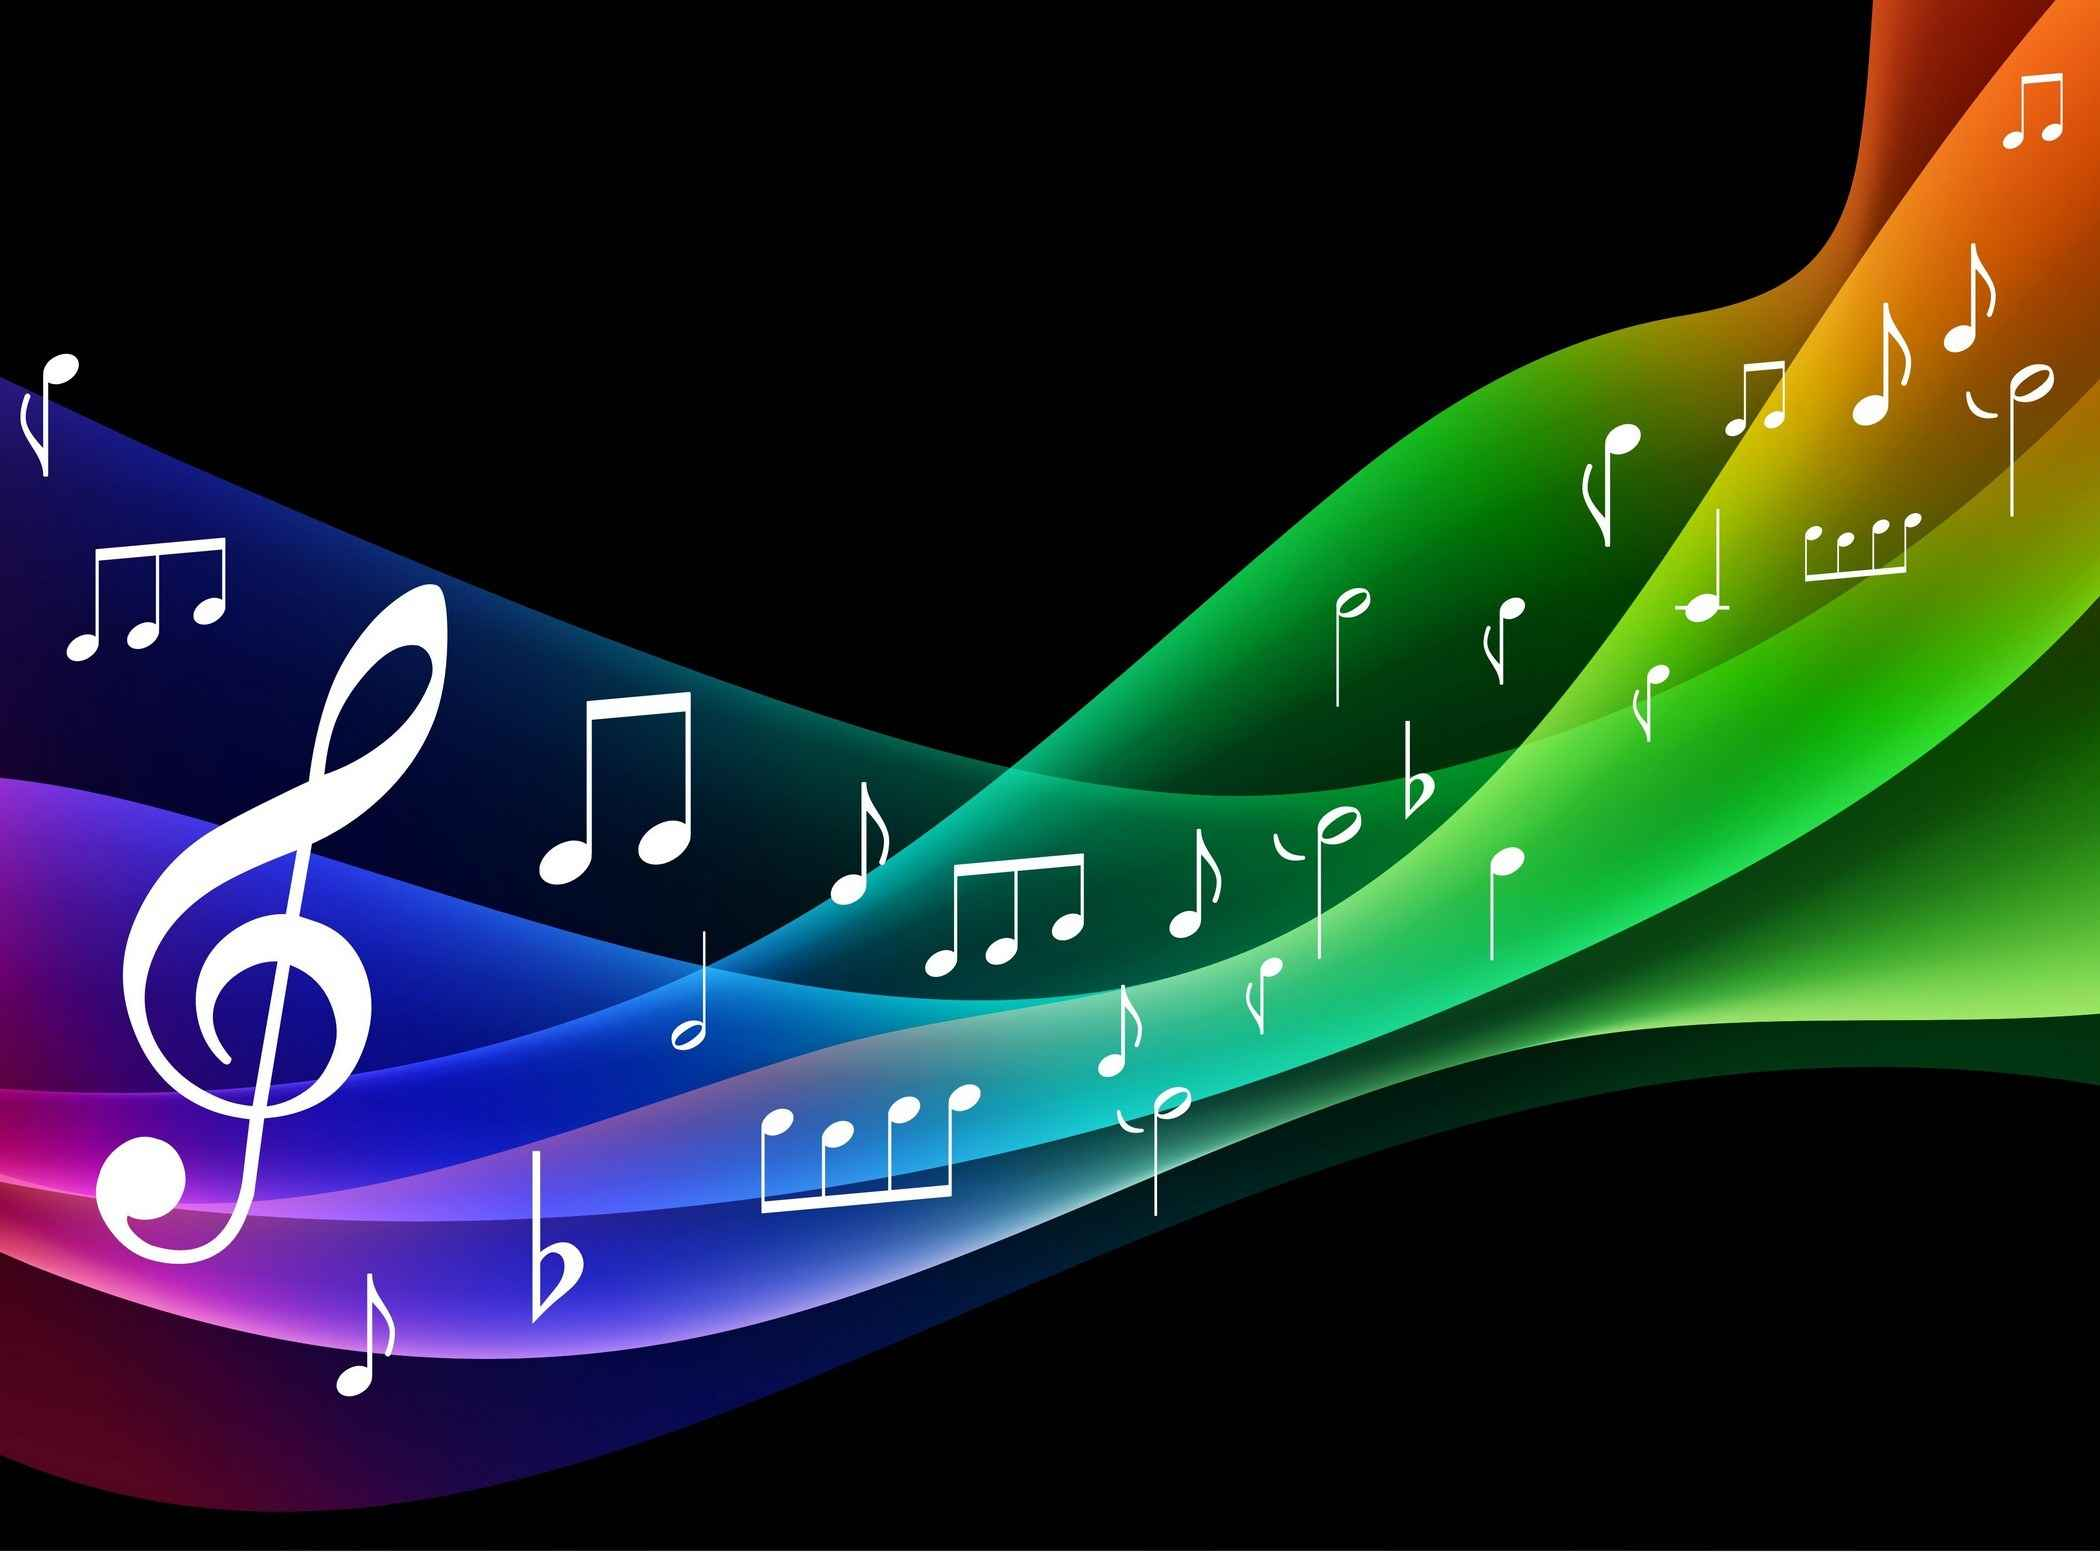 Symphony Music Background Vector [EPS File]